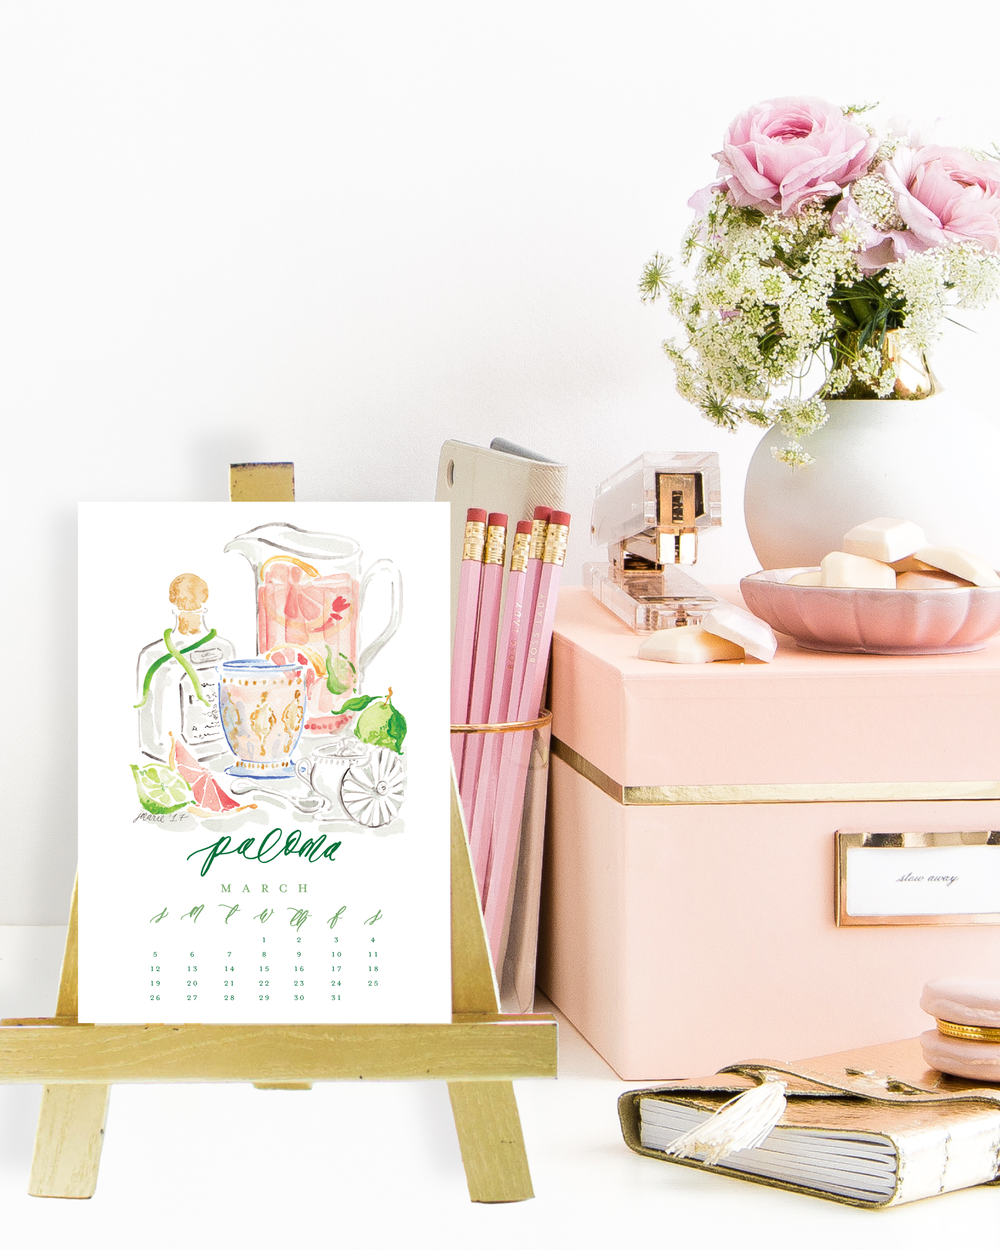 2017 Cocktail Calendar with Watercolor Cocktail Illustrations by Simply Jessica Marie